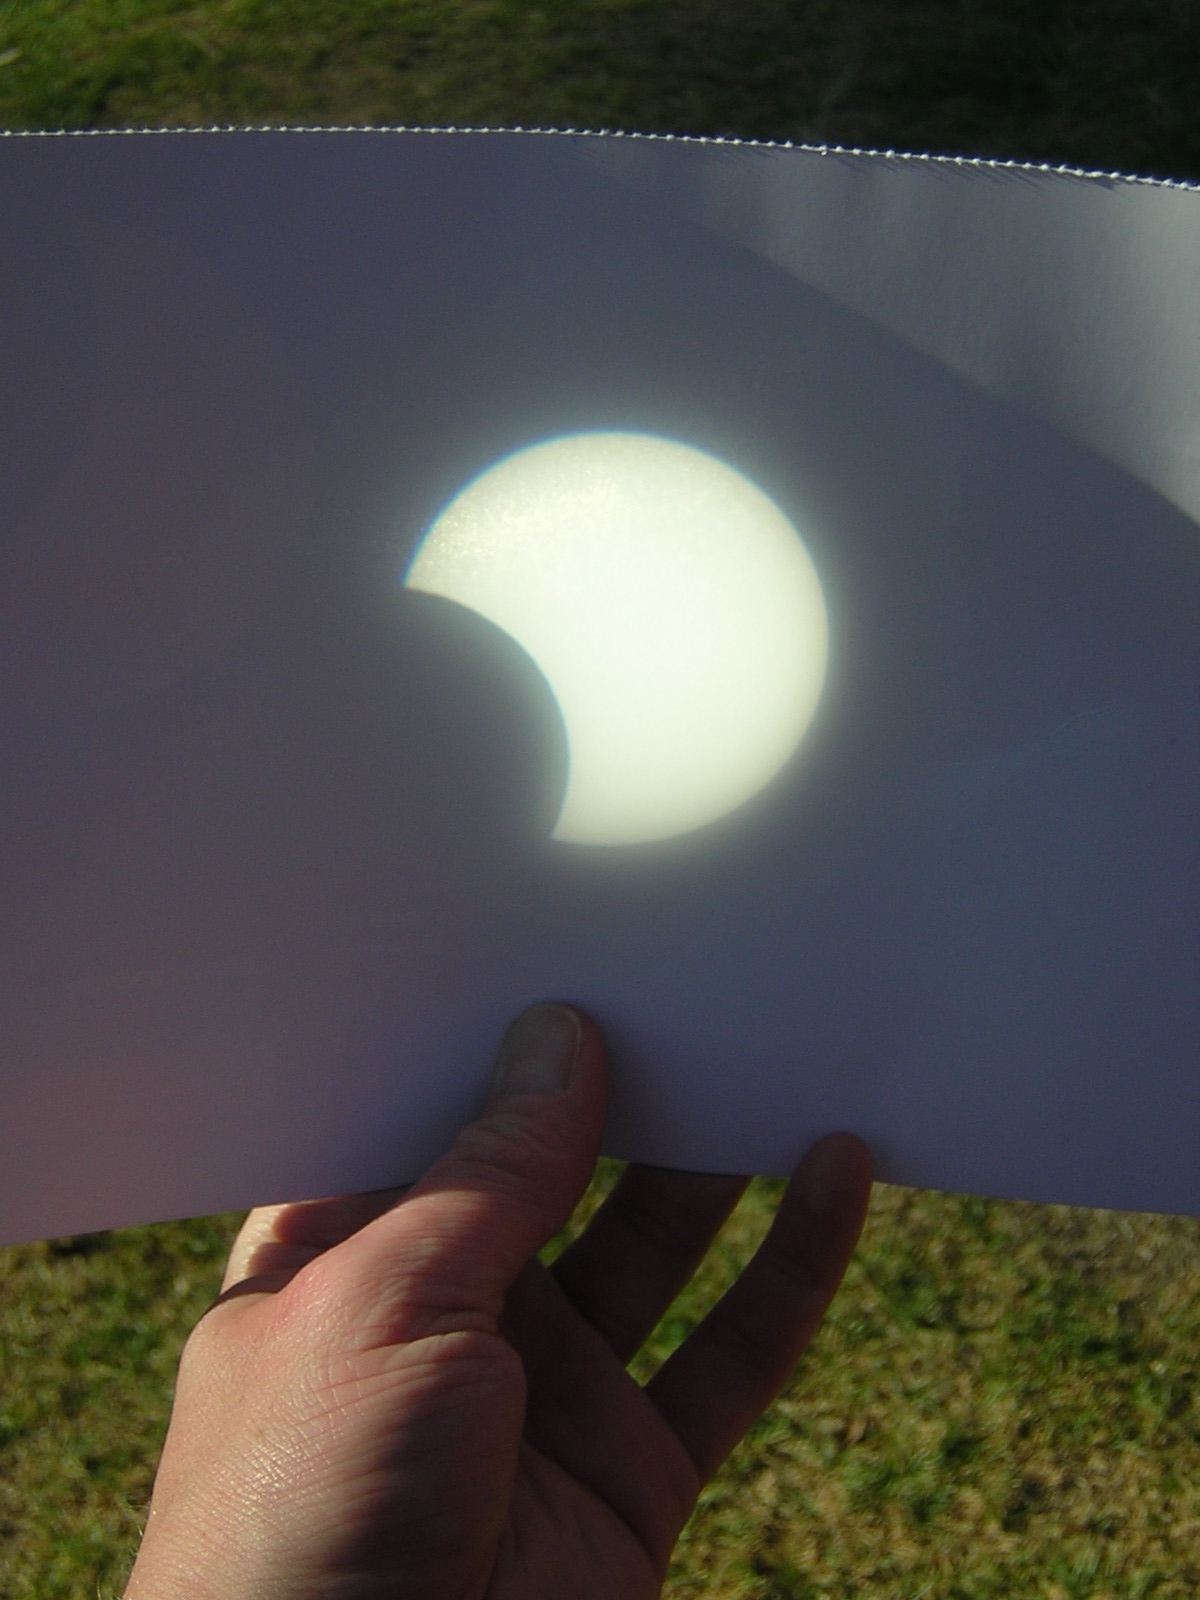 Partial eclipse, 26th January 2009, Perth